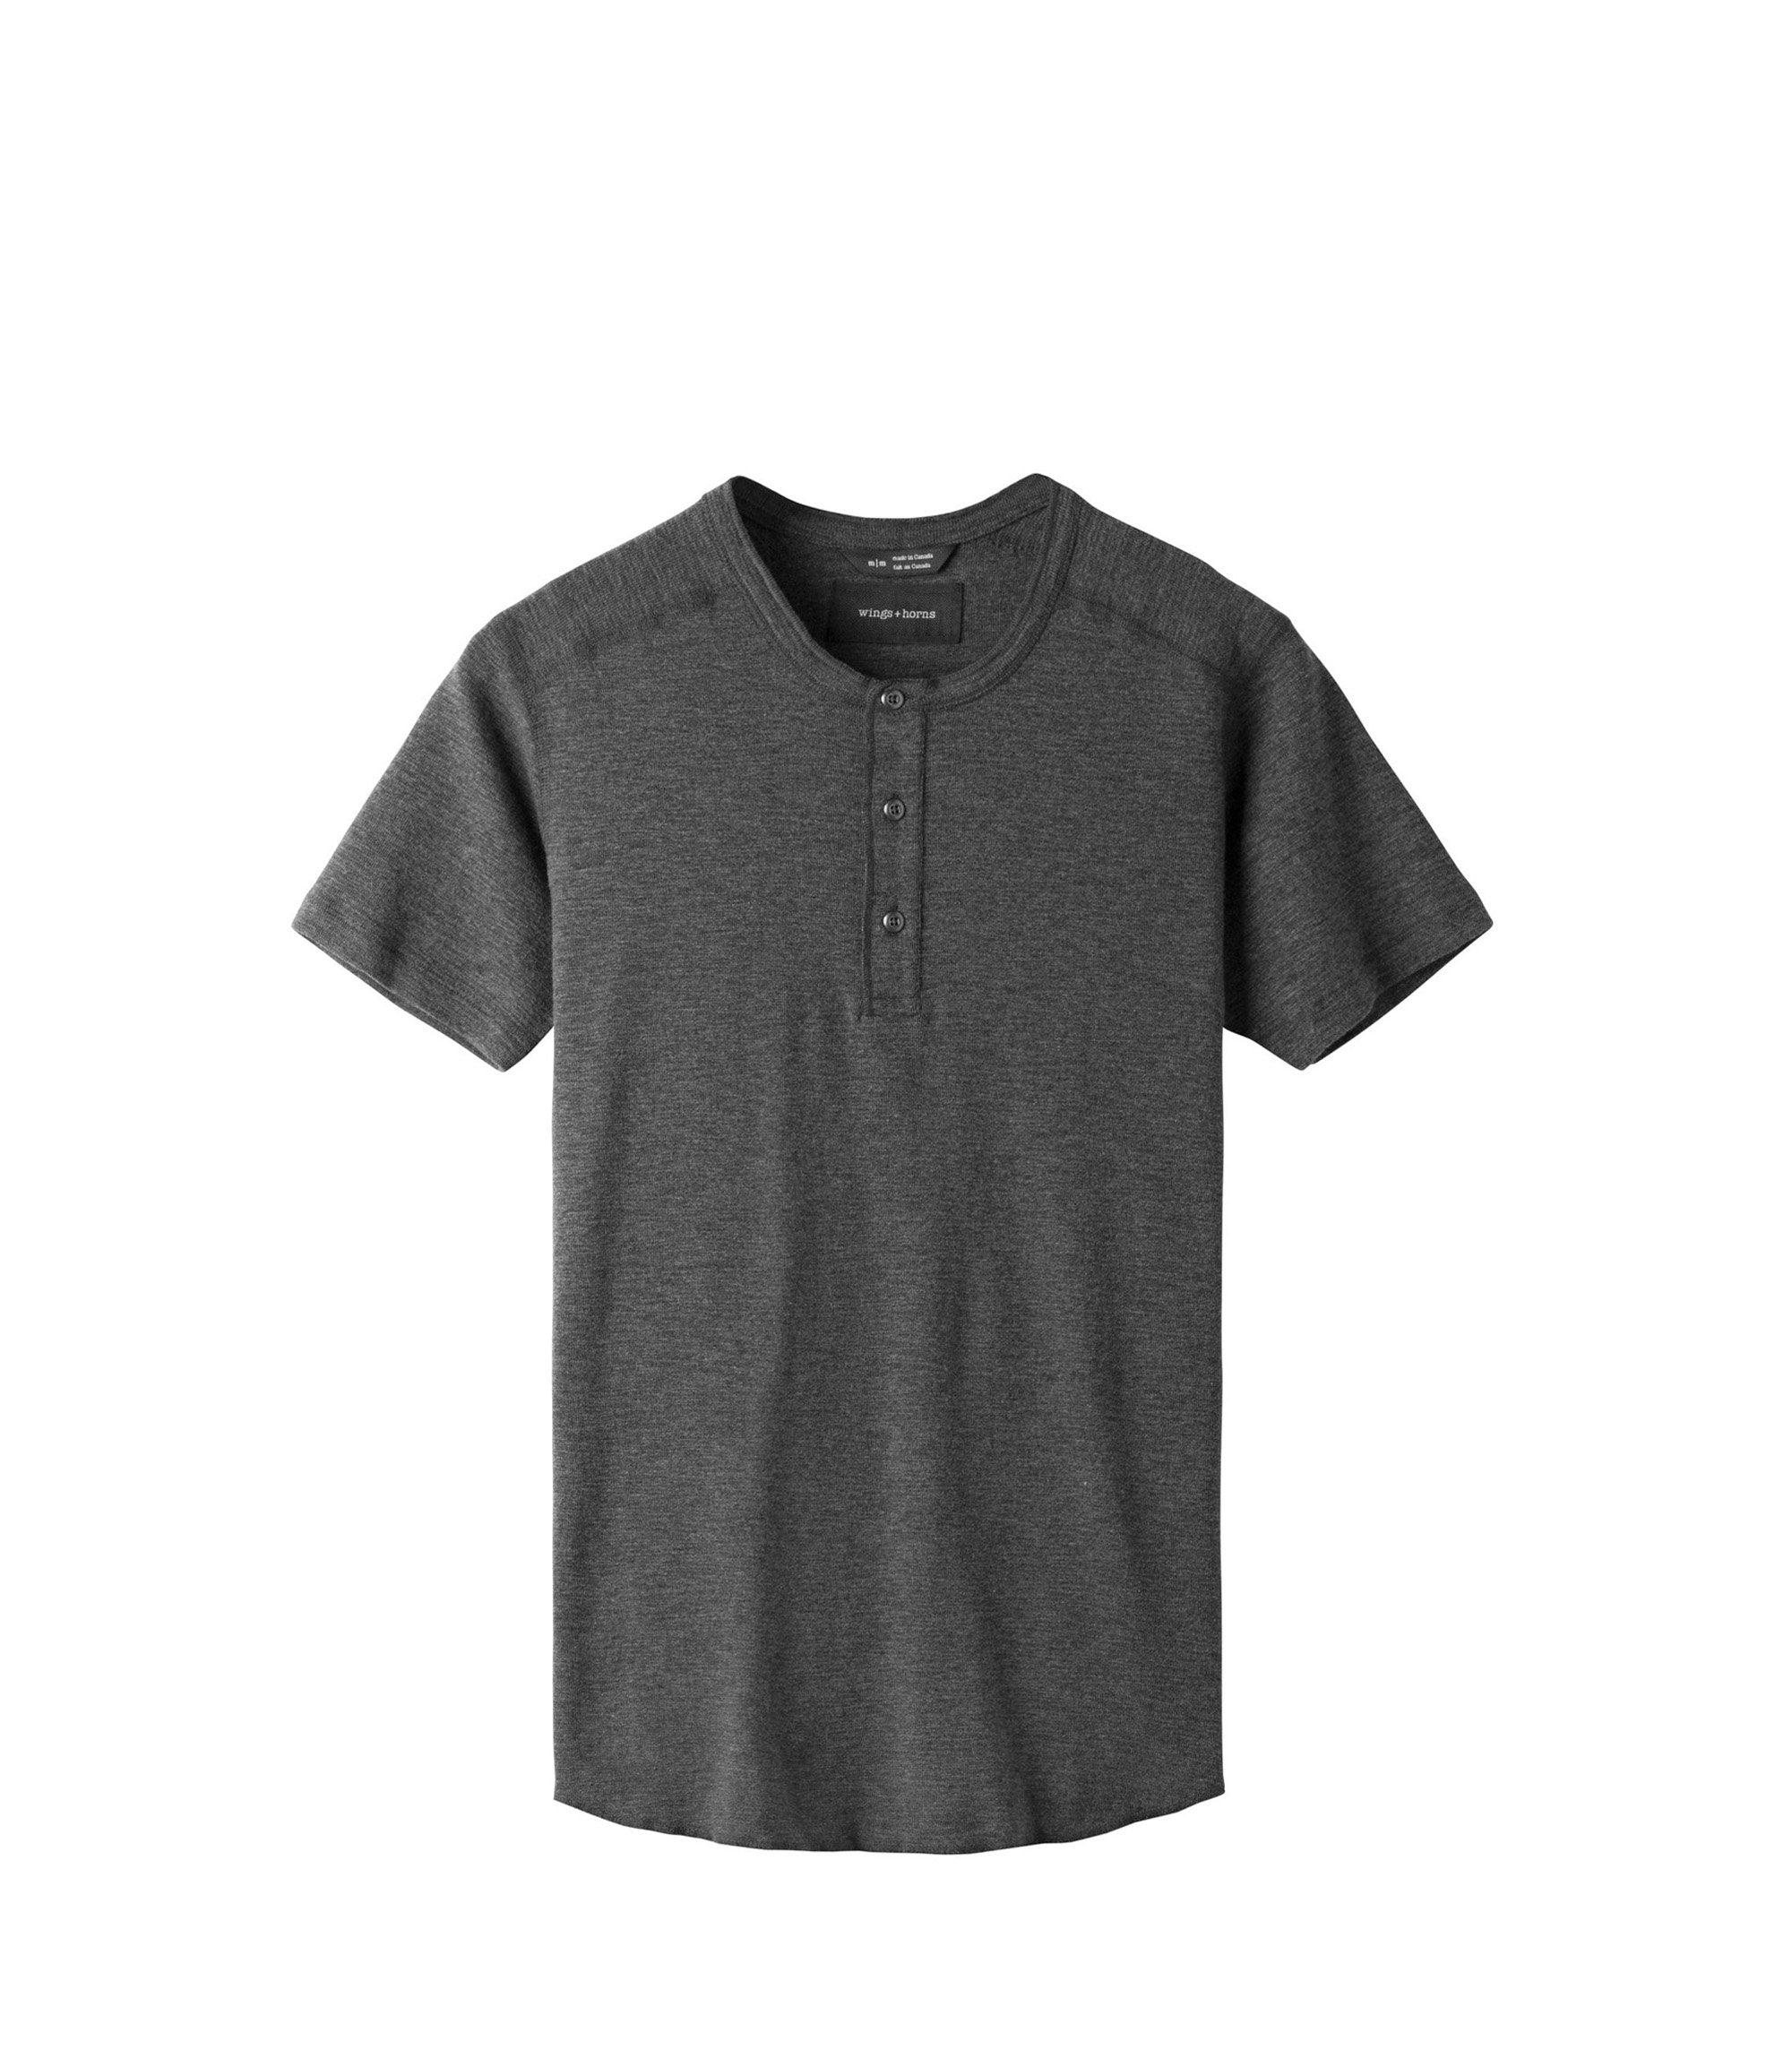 WINGS + HORNS M'S T-SHIRTS BASE S/S HENLEY